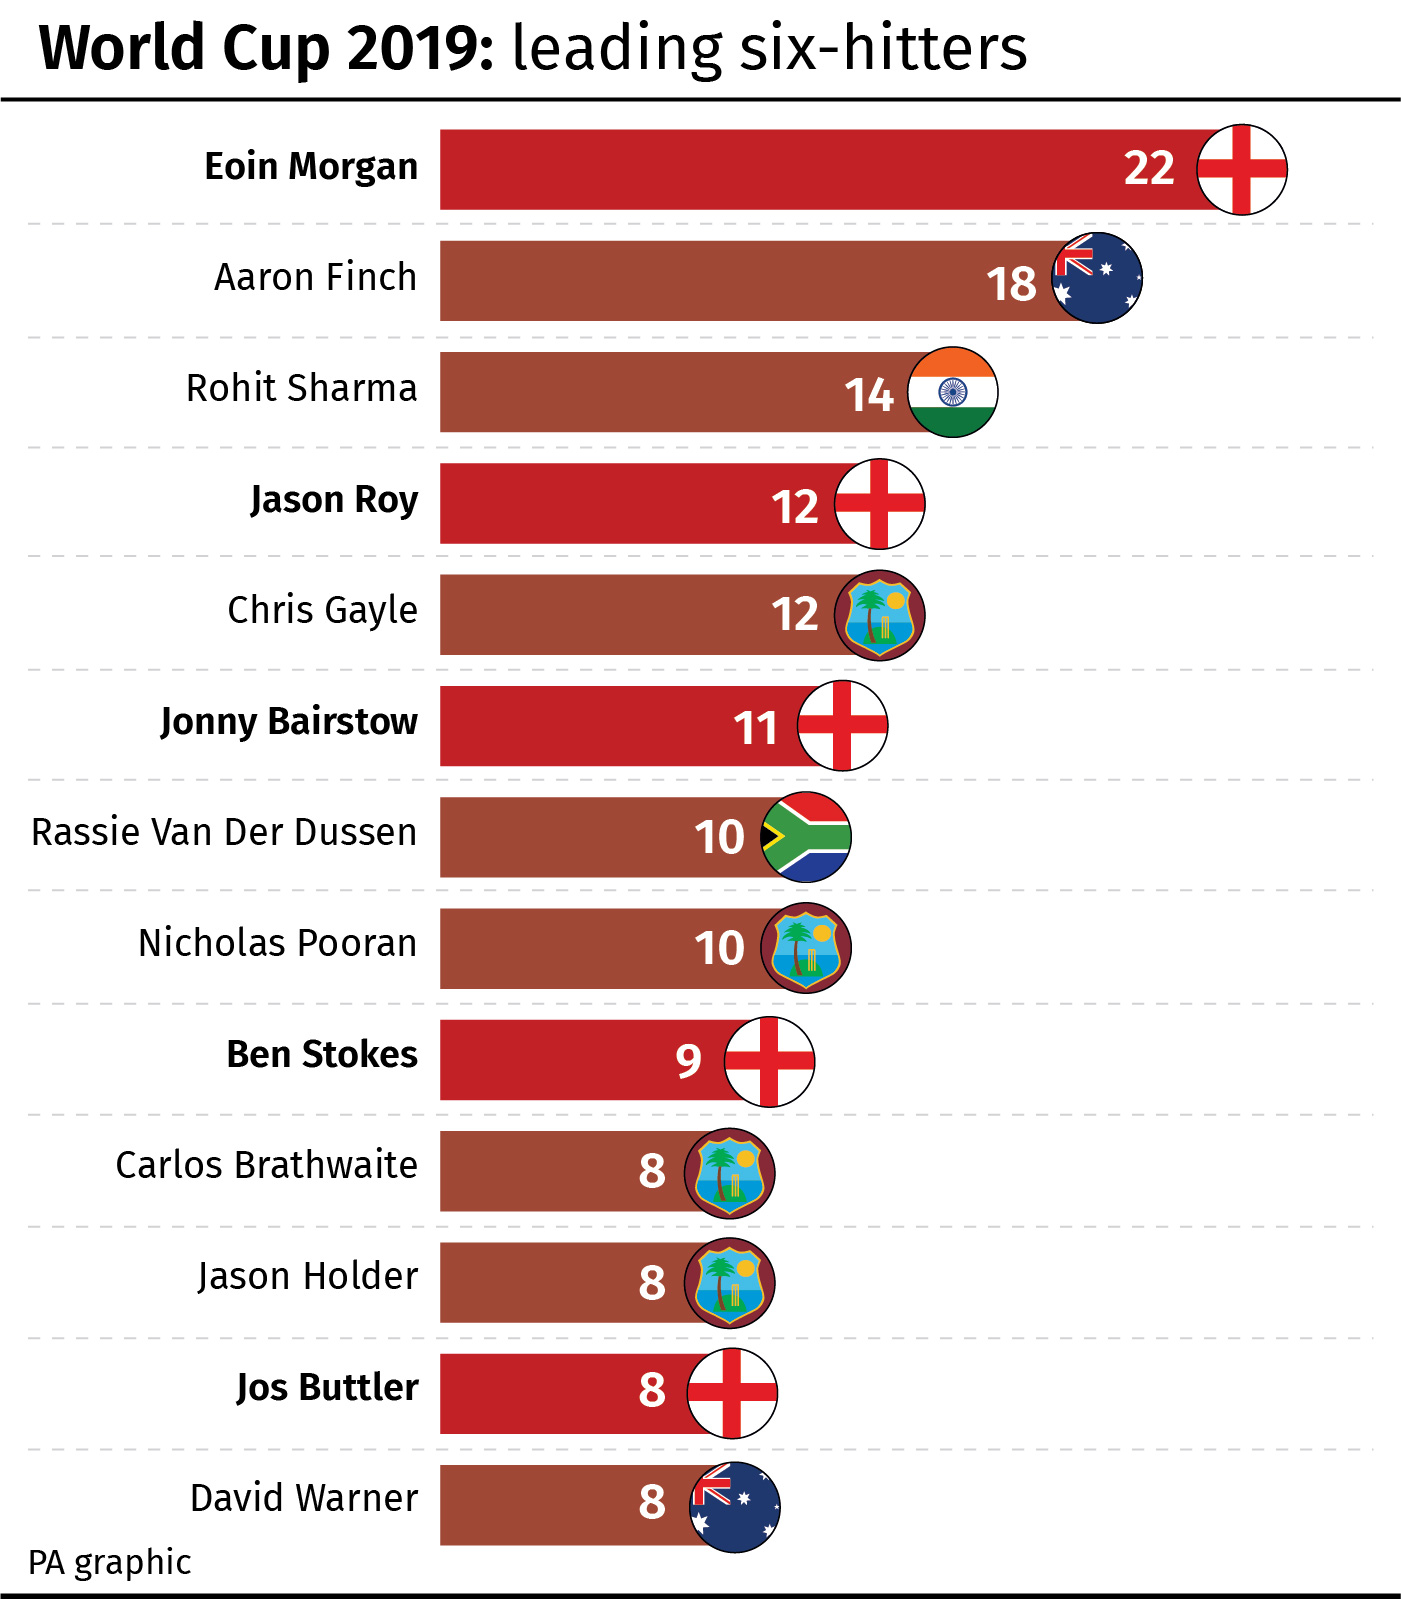 World Cup 2019: most sixes